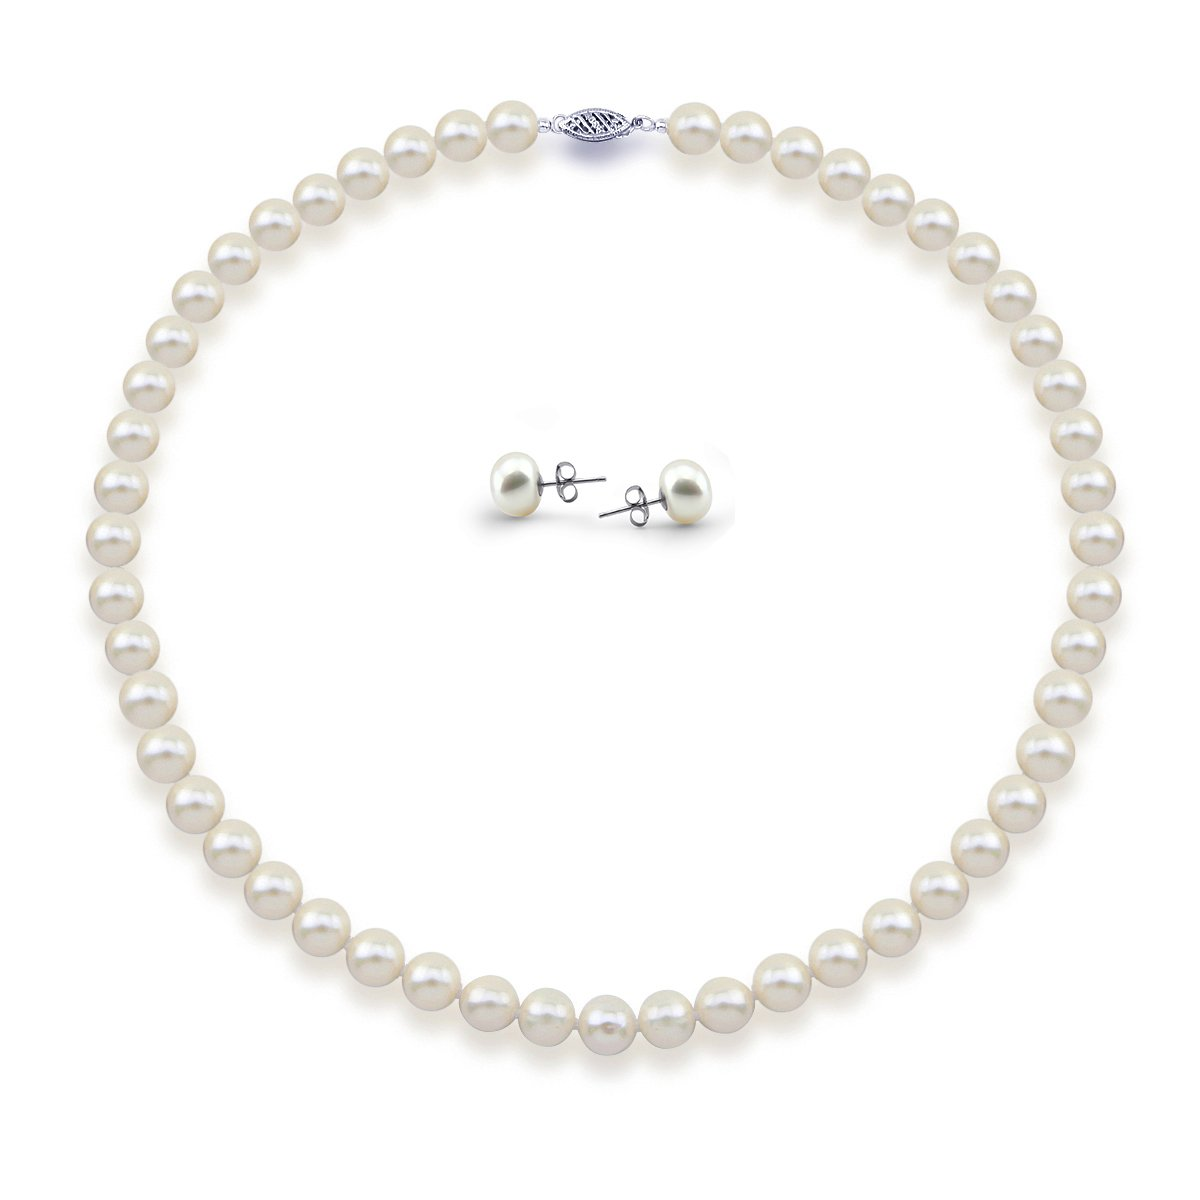 14K White Gold 7.5-8.0mm High Luster White Freshwater Cultured Pearl Necklace, Earrings Set, 18'' Length